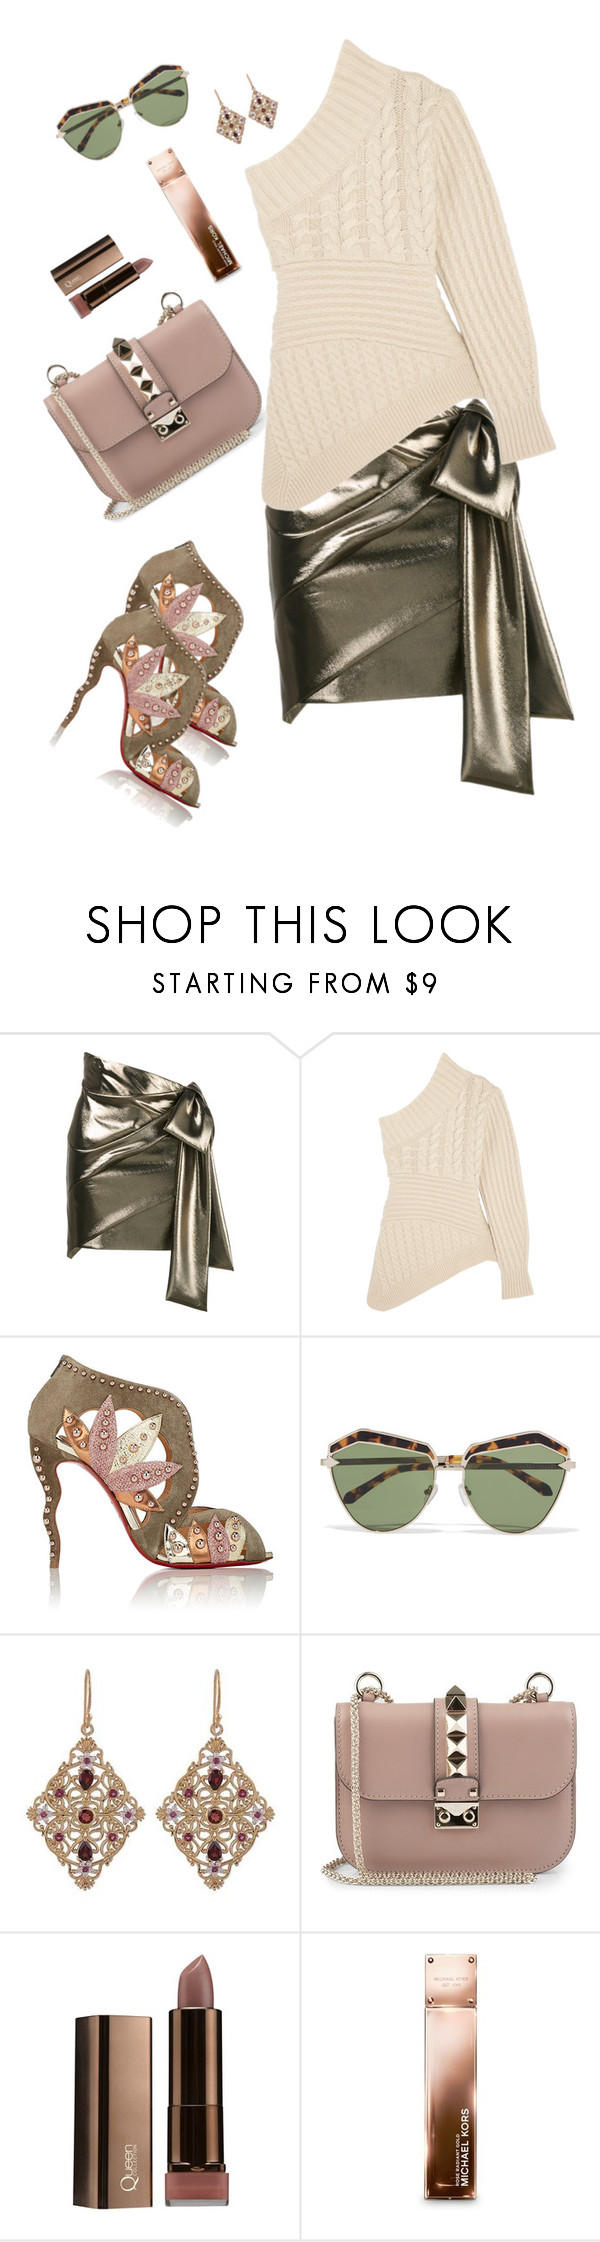 """""""Day10 set"""" by natalia-andre-morin ❤ liked on Polyvore featuring Yves Saint Laurent, Burberry, Christian Louboutin, Karen Walker, NOVICA, Valentino and Michael Kors"""